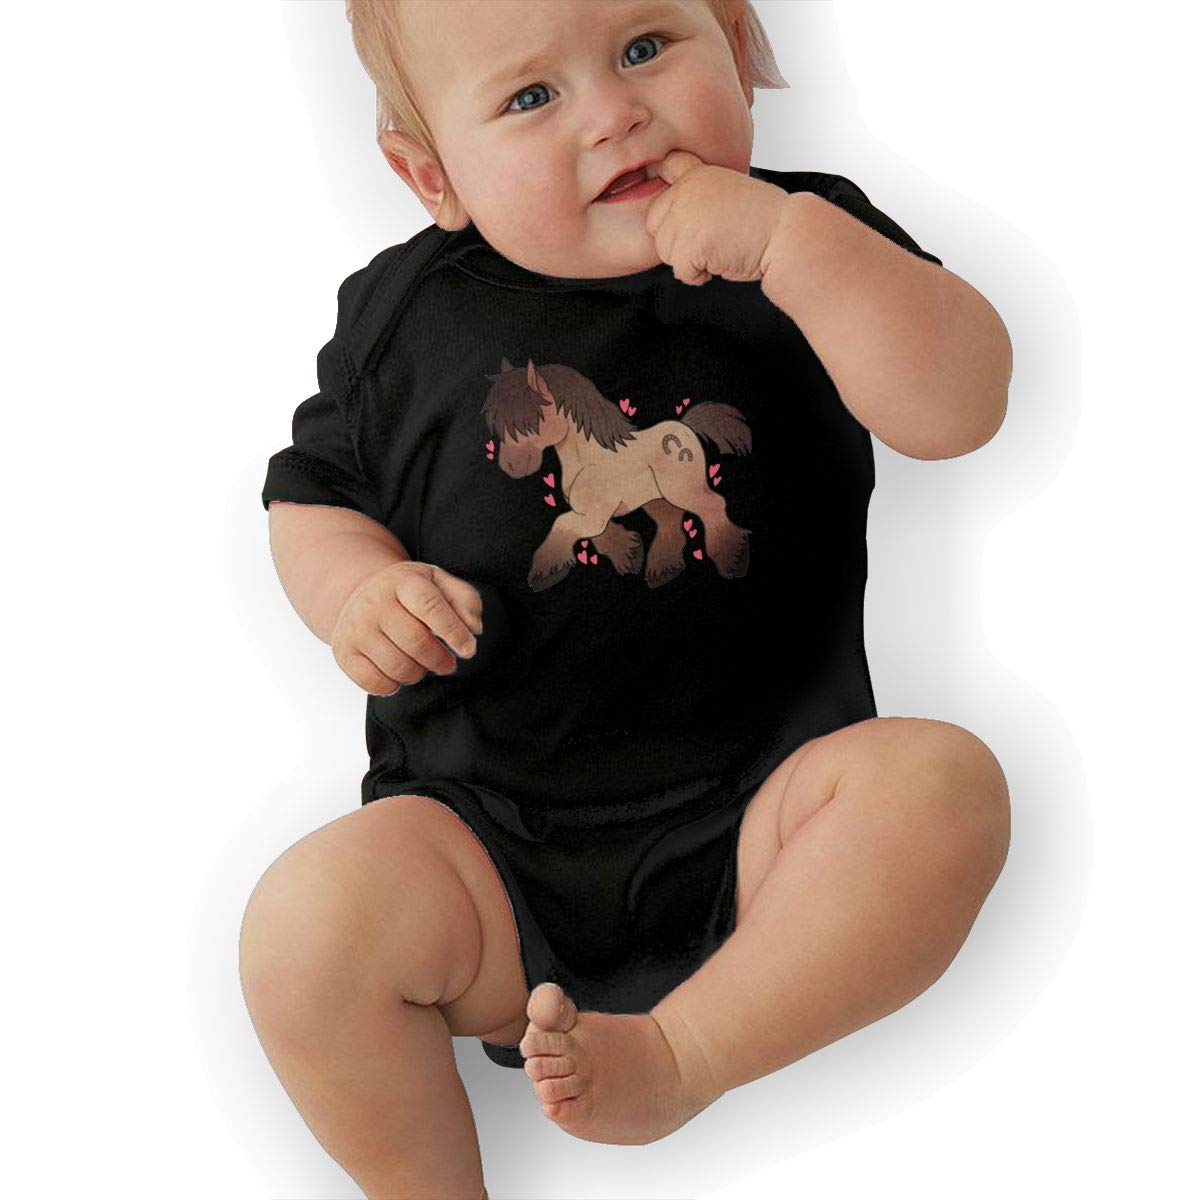 HappyLifea Shy Horse Baby Pajamas Bodysuits Clothes Onesies Jumpsuits Outfits Black